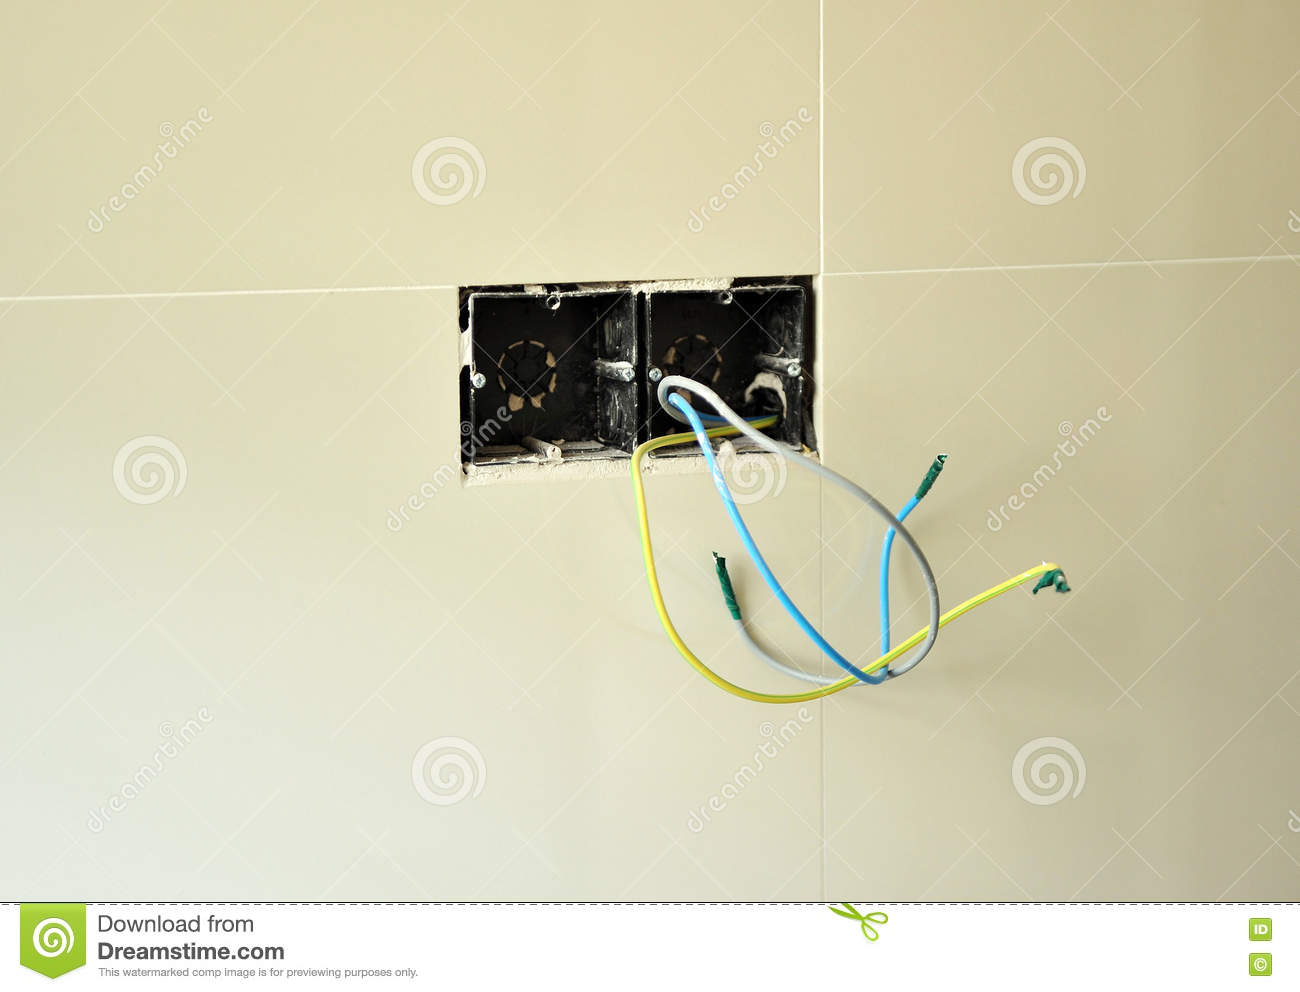 hight resolution of wiring of the new electrical installation in the reform of the kitchen of the house